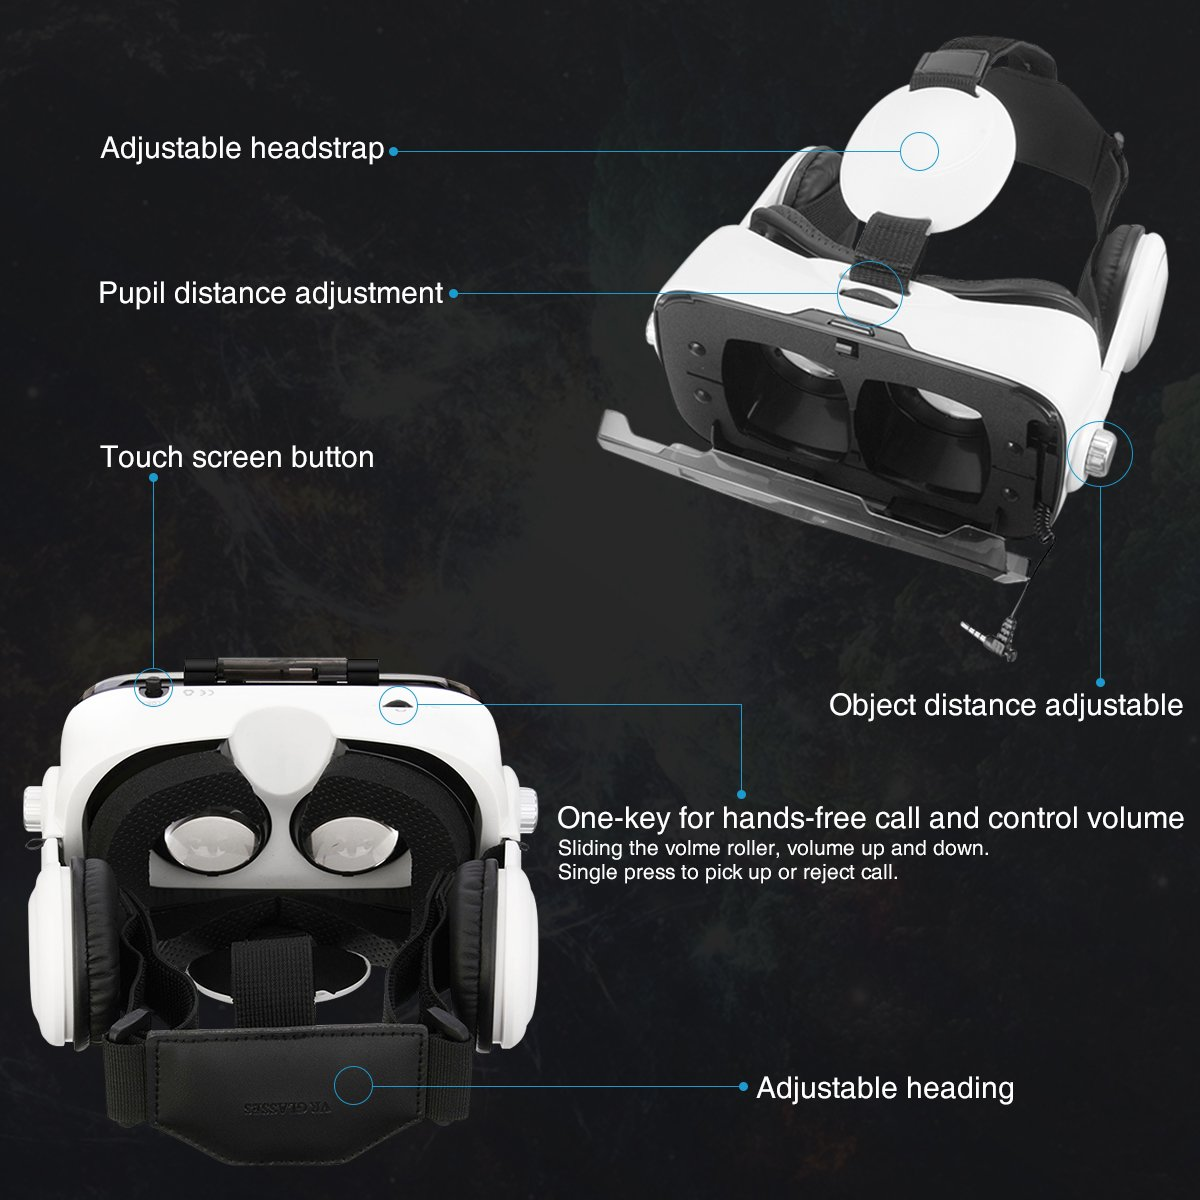 ELEGIANT VR Headset, 3D VR Glasses, Virtual Reality Headset Built-in Headphone by ELEGIANT (Image #2)